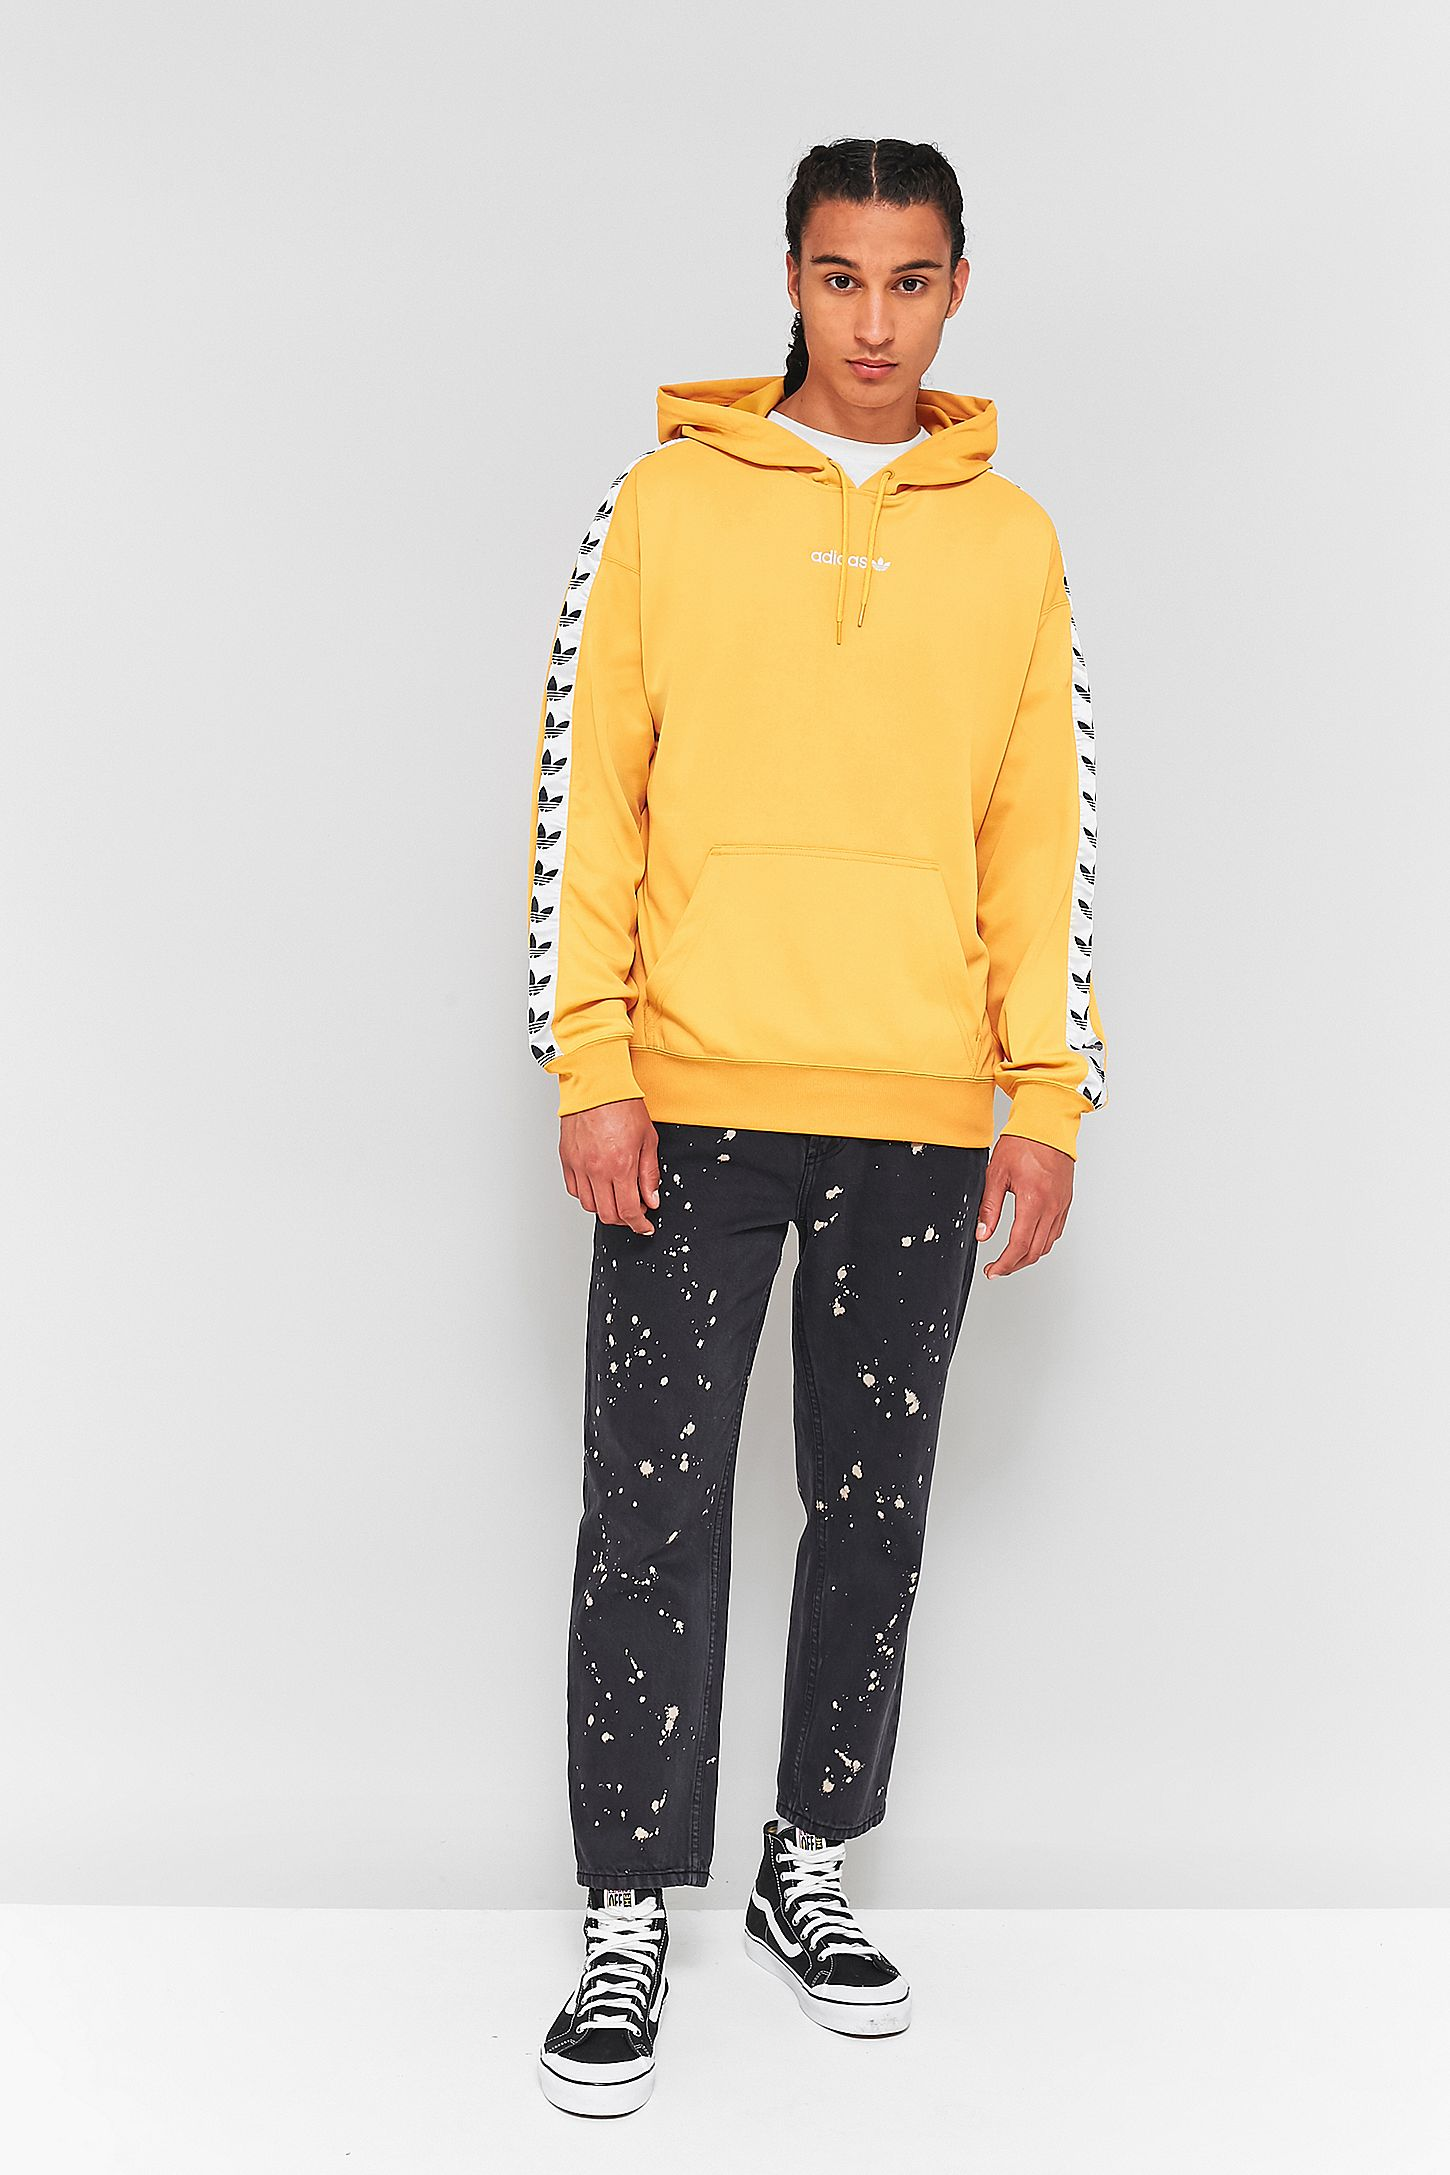 dca08966a6 adidas TNT Yellow and White Taped Hoodie